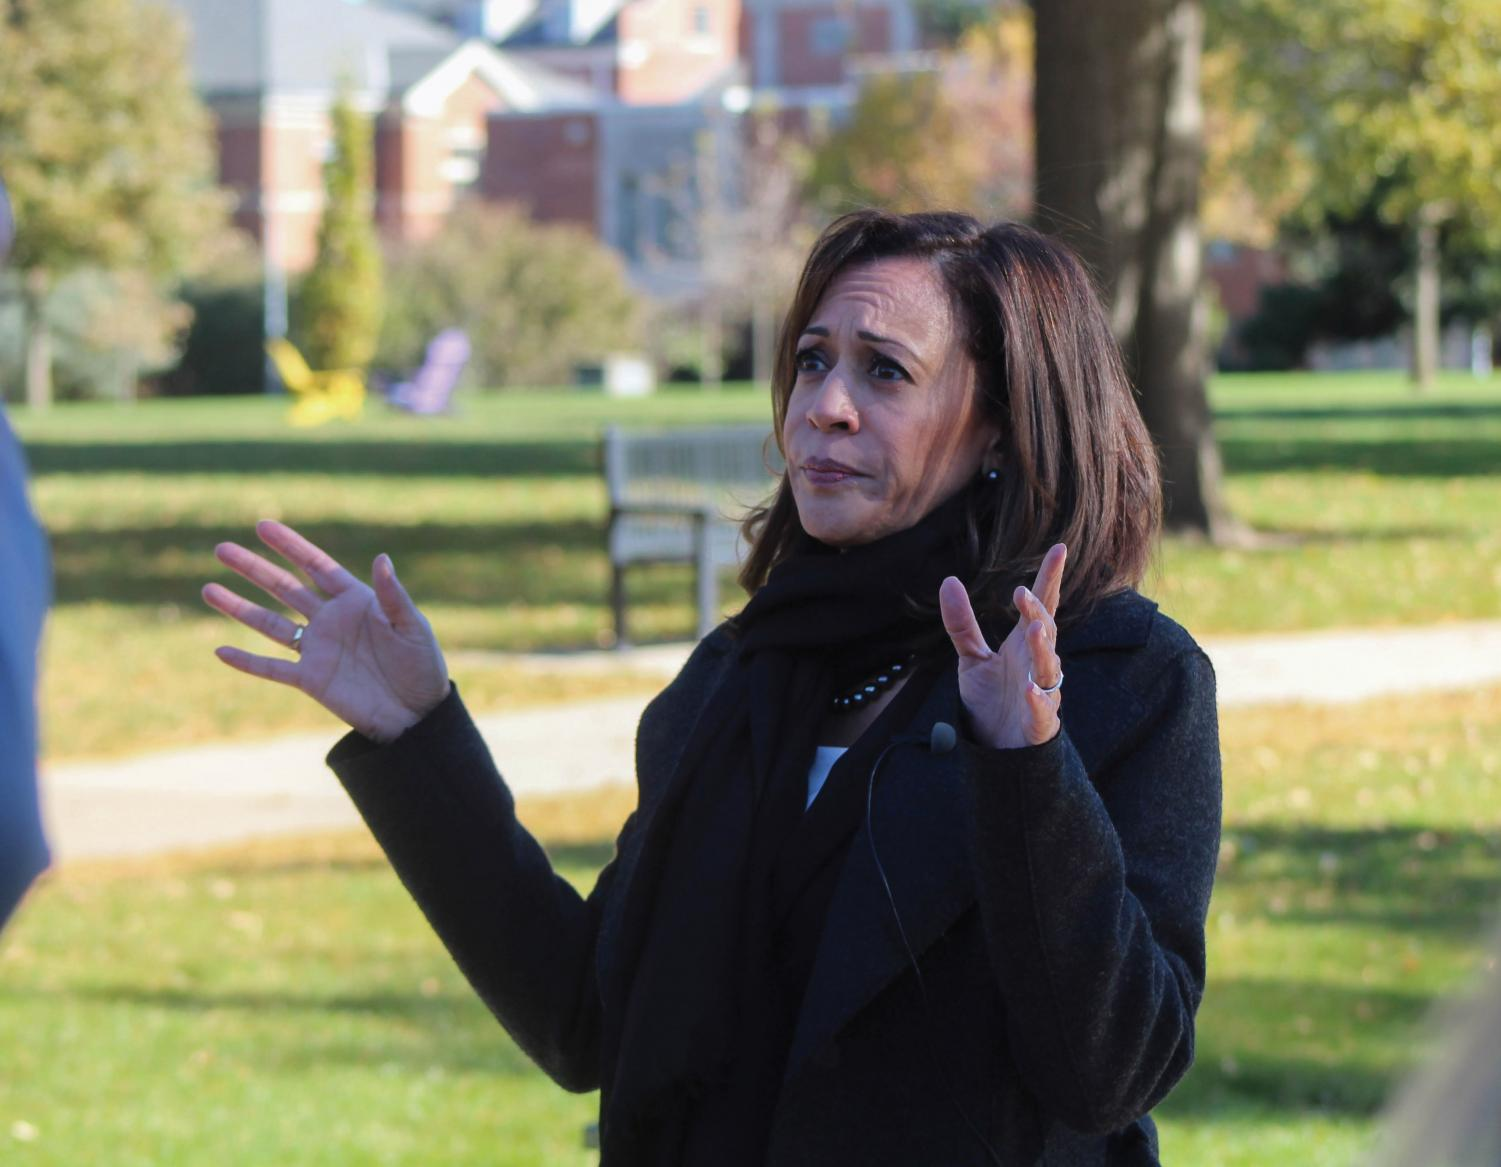 Kamala Harris addresses students during a campus visit in October of 2018. The California senator and 2020 presidential candidate will return to UNI on Friday, Sept. 20.